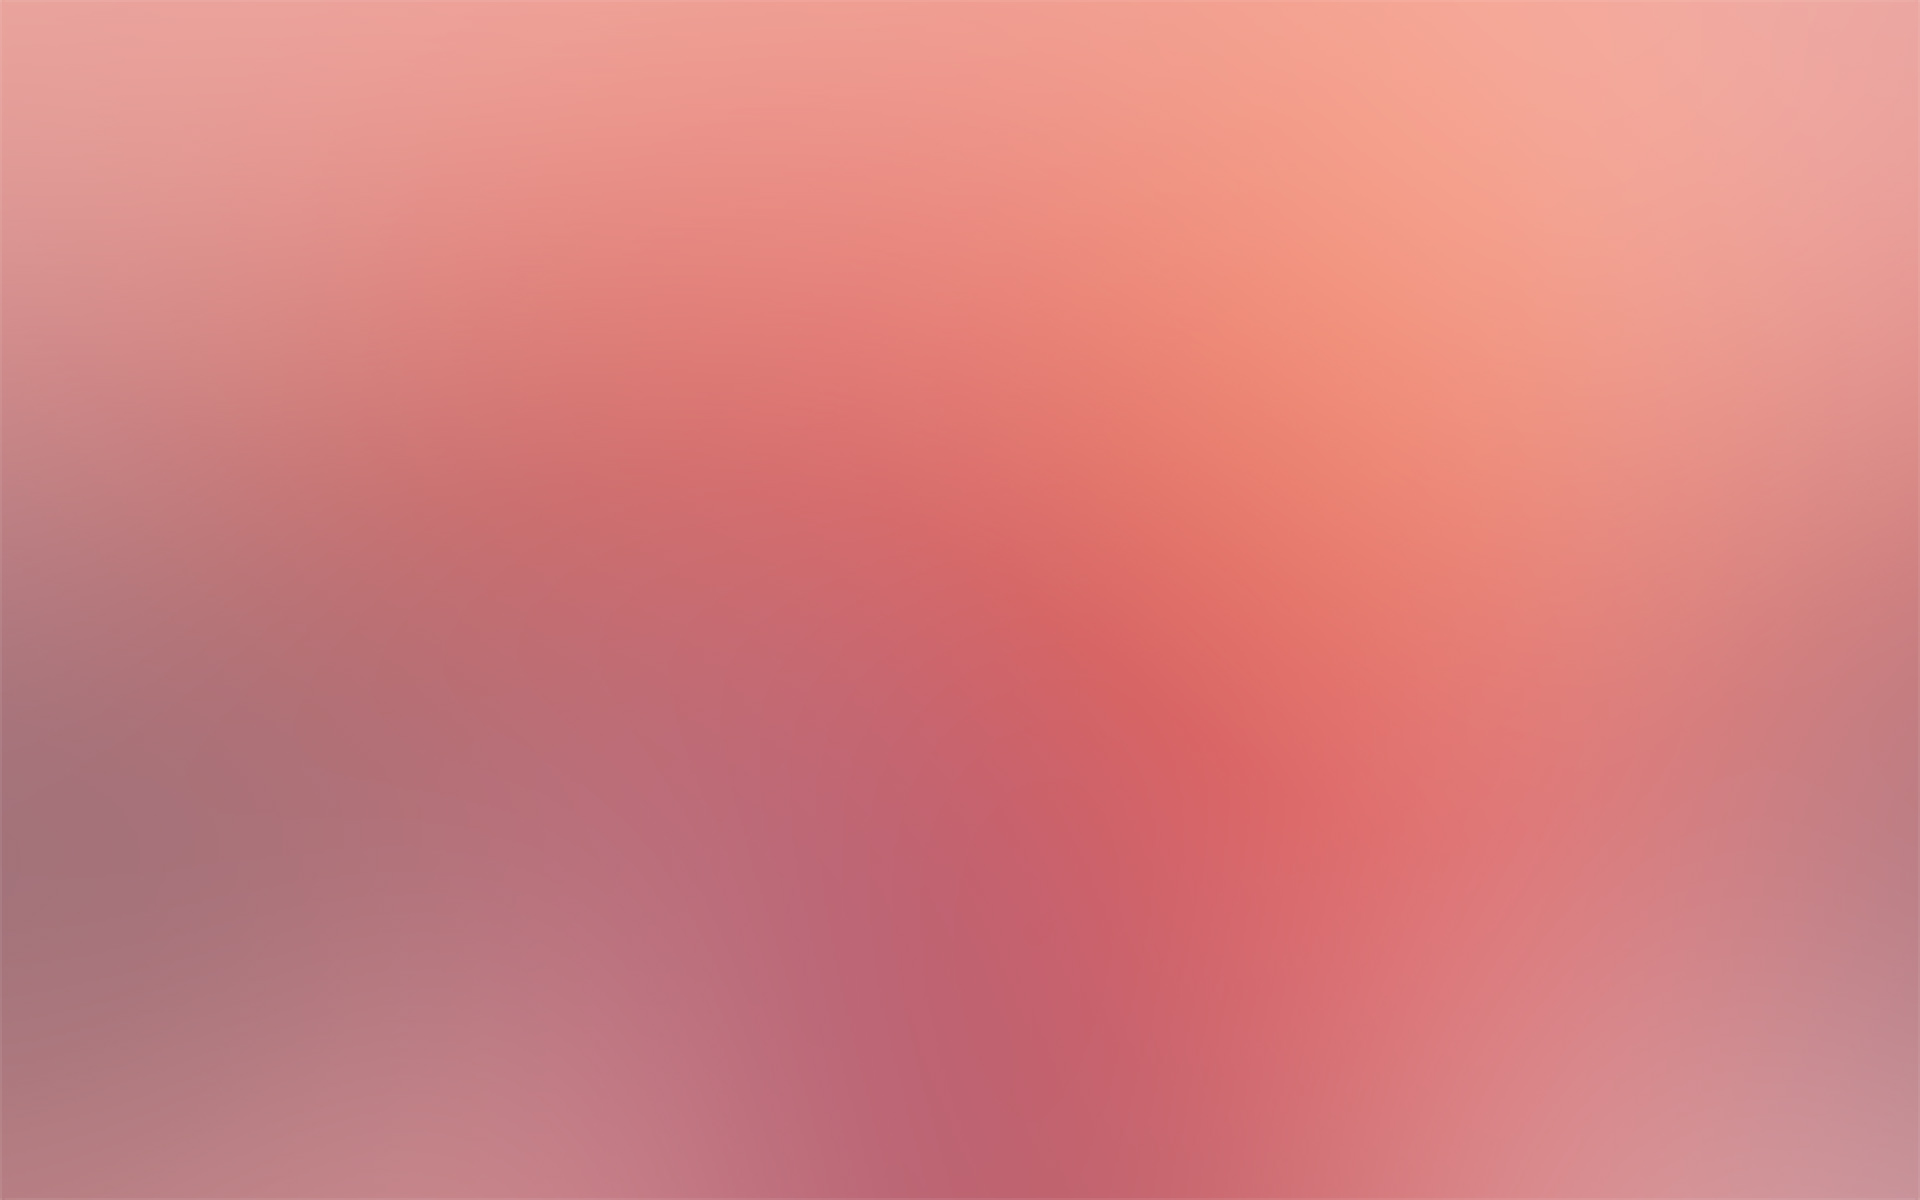 Apple Iphone X Wallpaper From Commercial 10 Free High Resolution Blurred Backgrounds